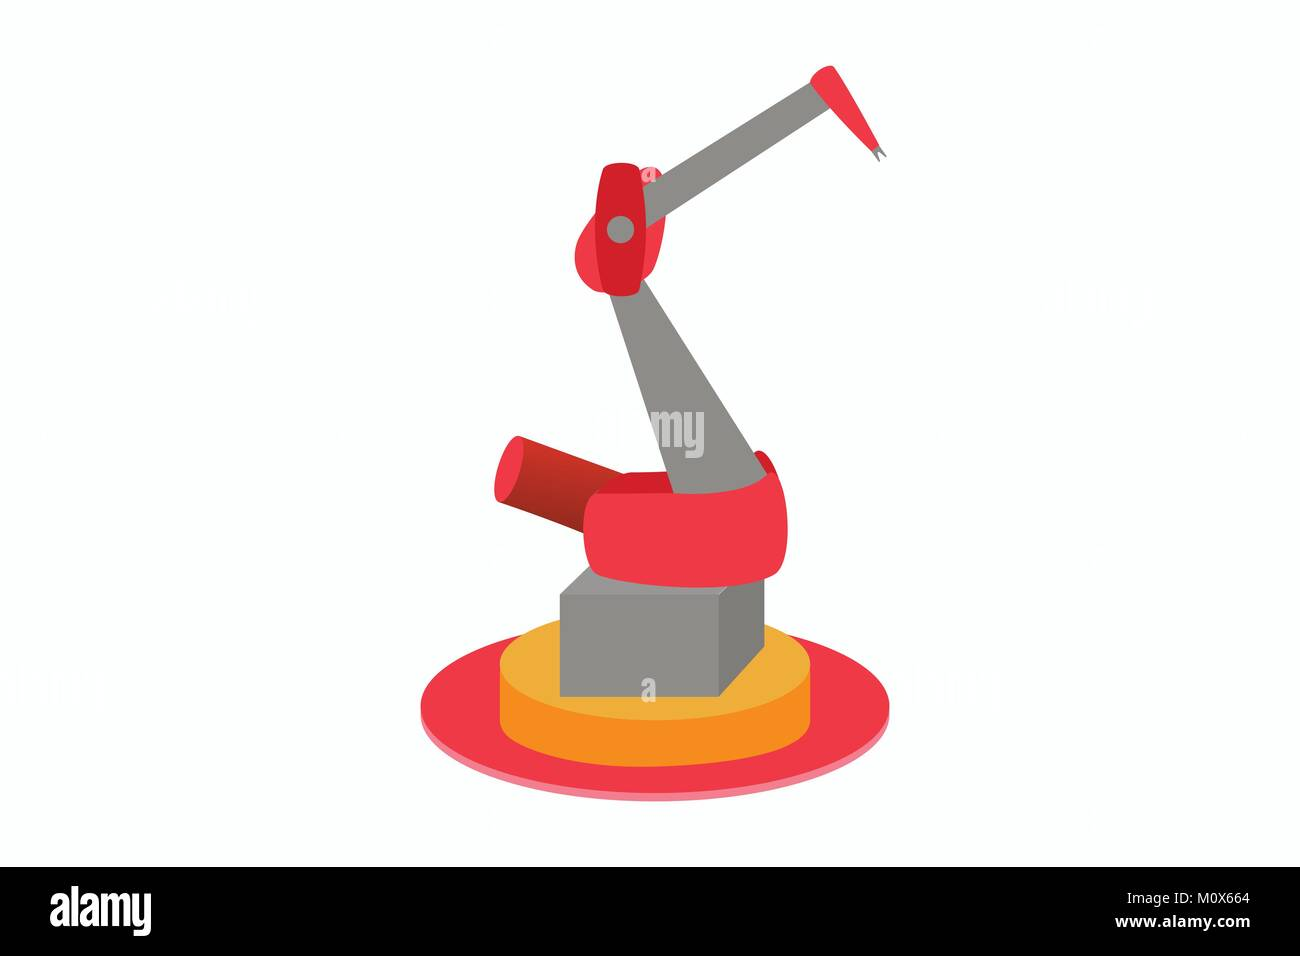 Illustration of industrial robot for assembly-line work in manufacturing leading to job cuts and mass unemployment, - Stock Vector